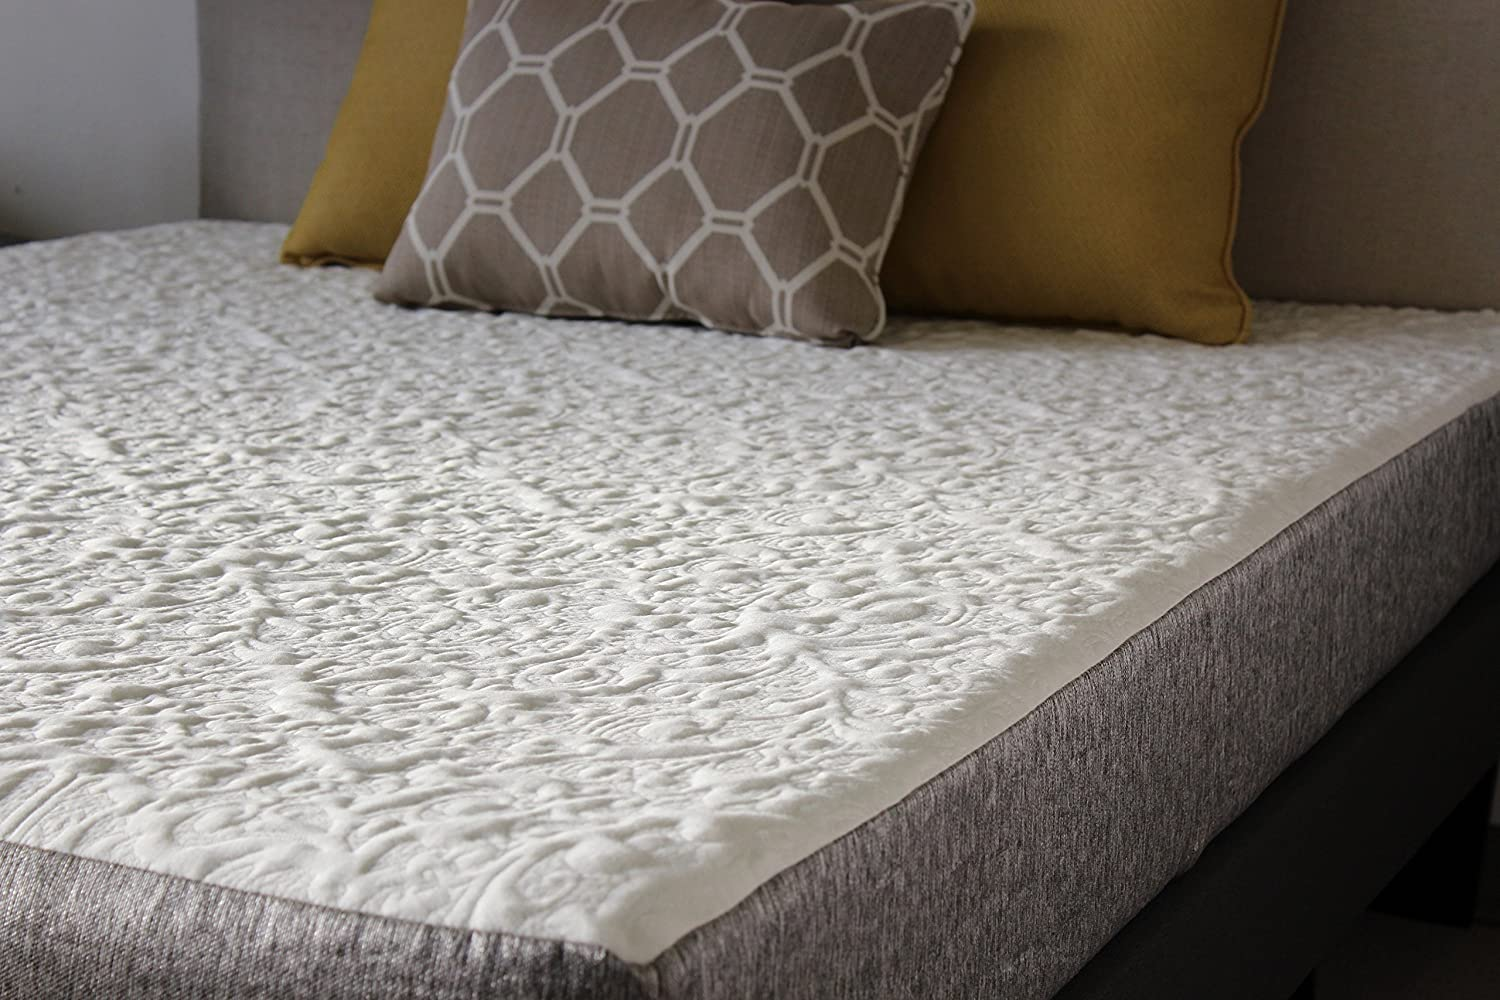 Handcrafted in USA 8 Inch Full Cool Sleep Gel Memory Foam Mattress with Premium Textured 8-Way Stretch Cover Full